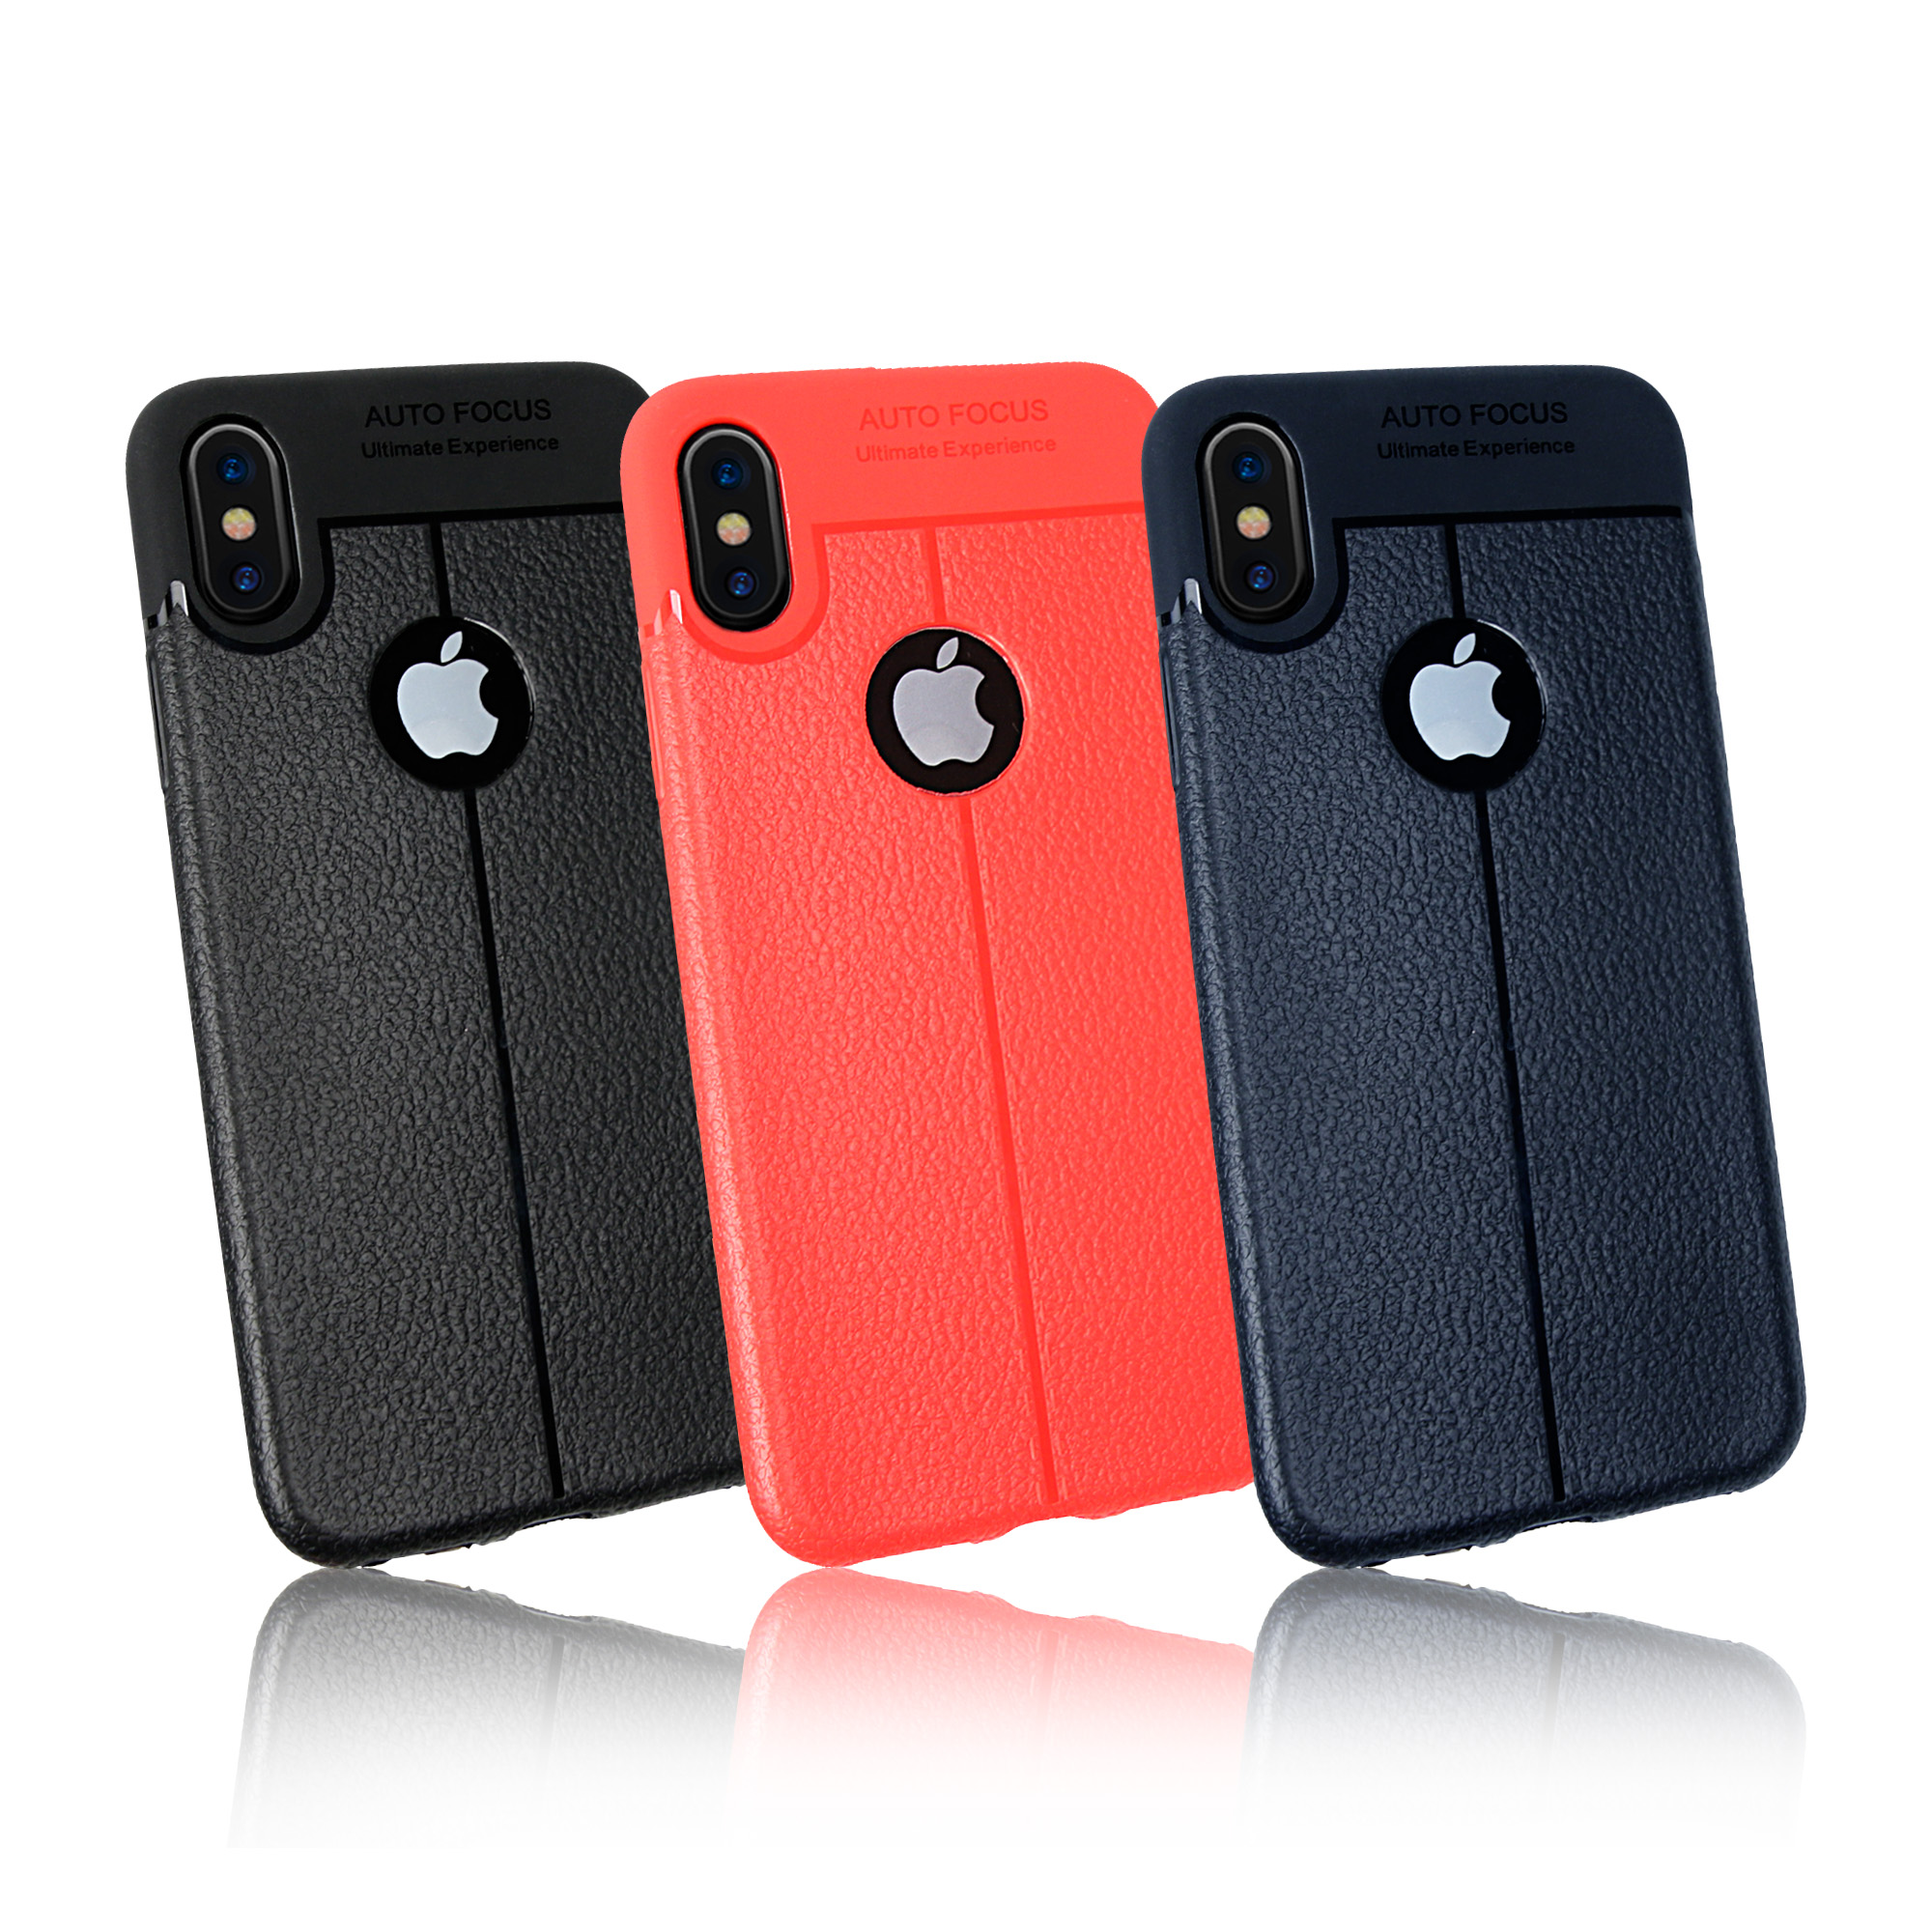 watch be5b4 f94e5 US $2.3 |Safe Shockproof Protective Cover Fit For iPhone X iPhone 8 Plus  iPhone 7 Plus 6 6S Plus 5 5S SE Mobile Cell Phone Cases Shell-in  Half-wrapped ...